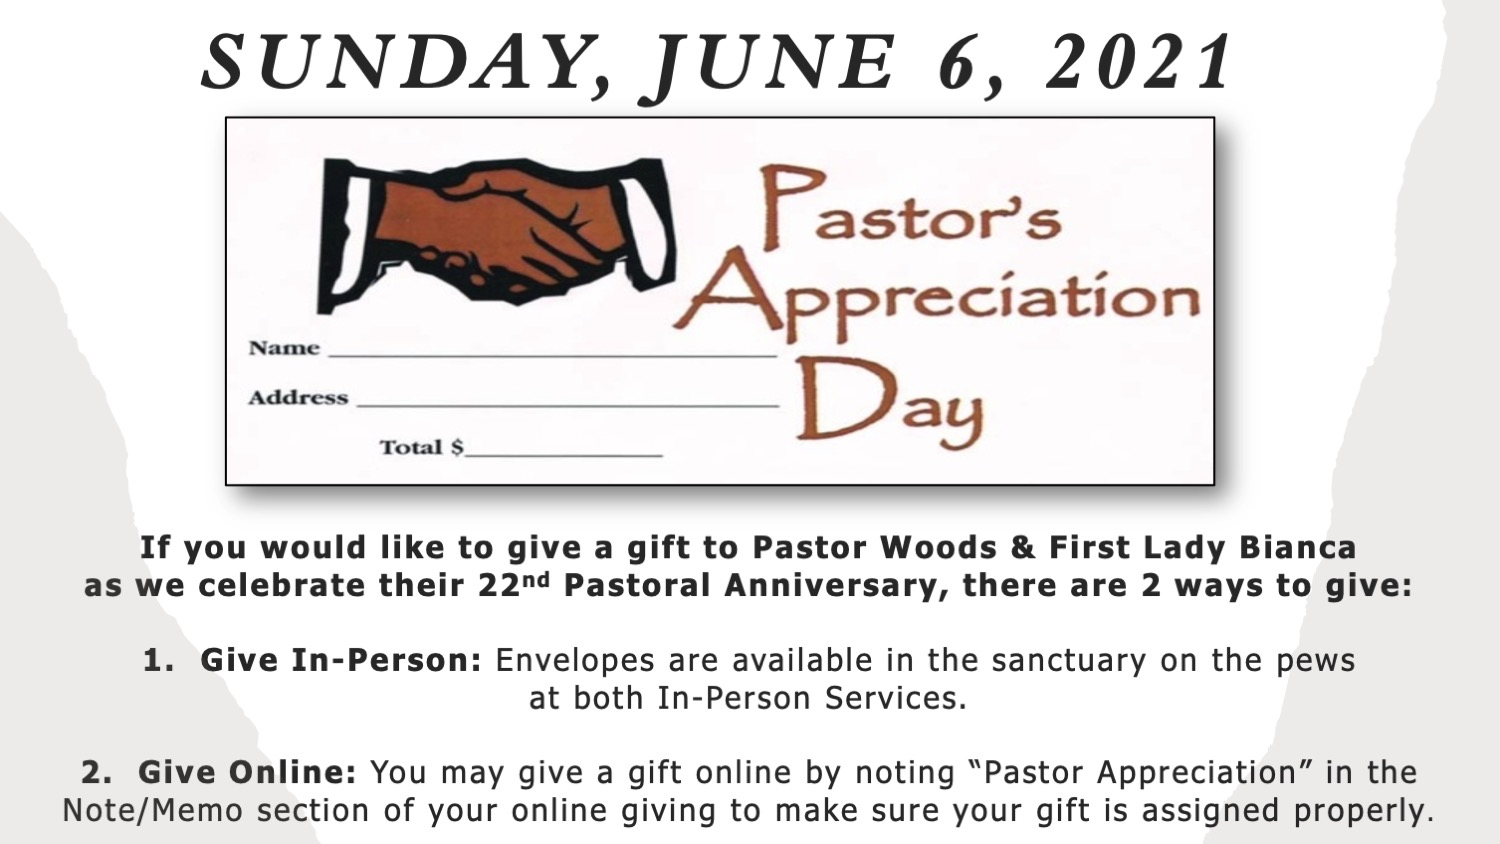 Ways to give a gift to Pastor Woods